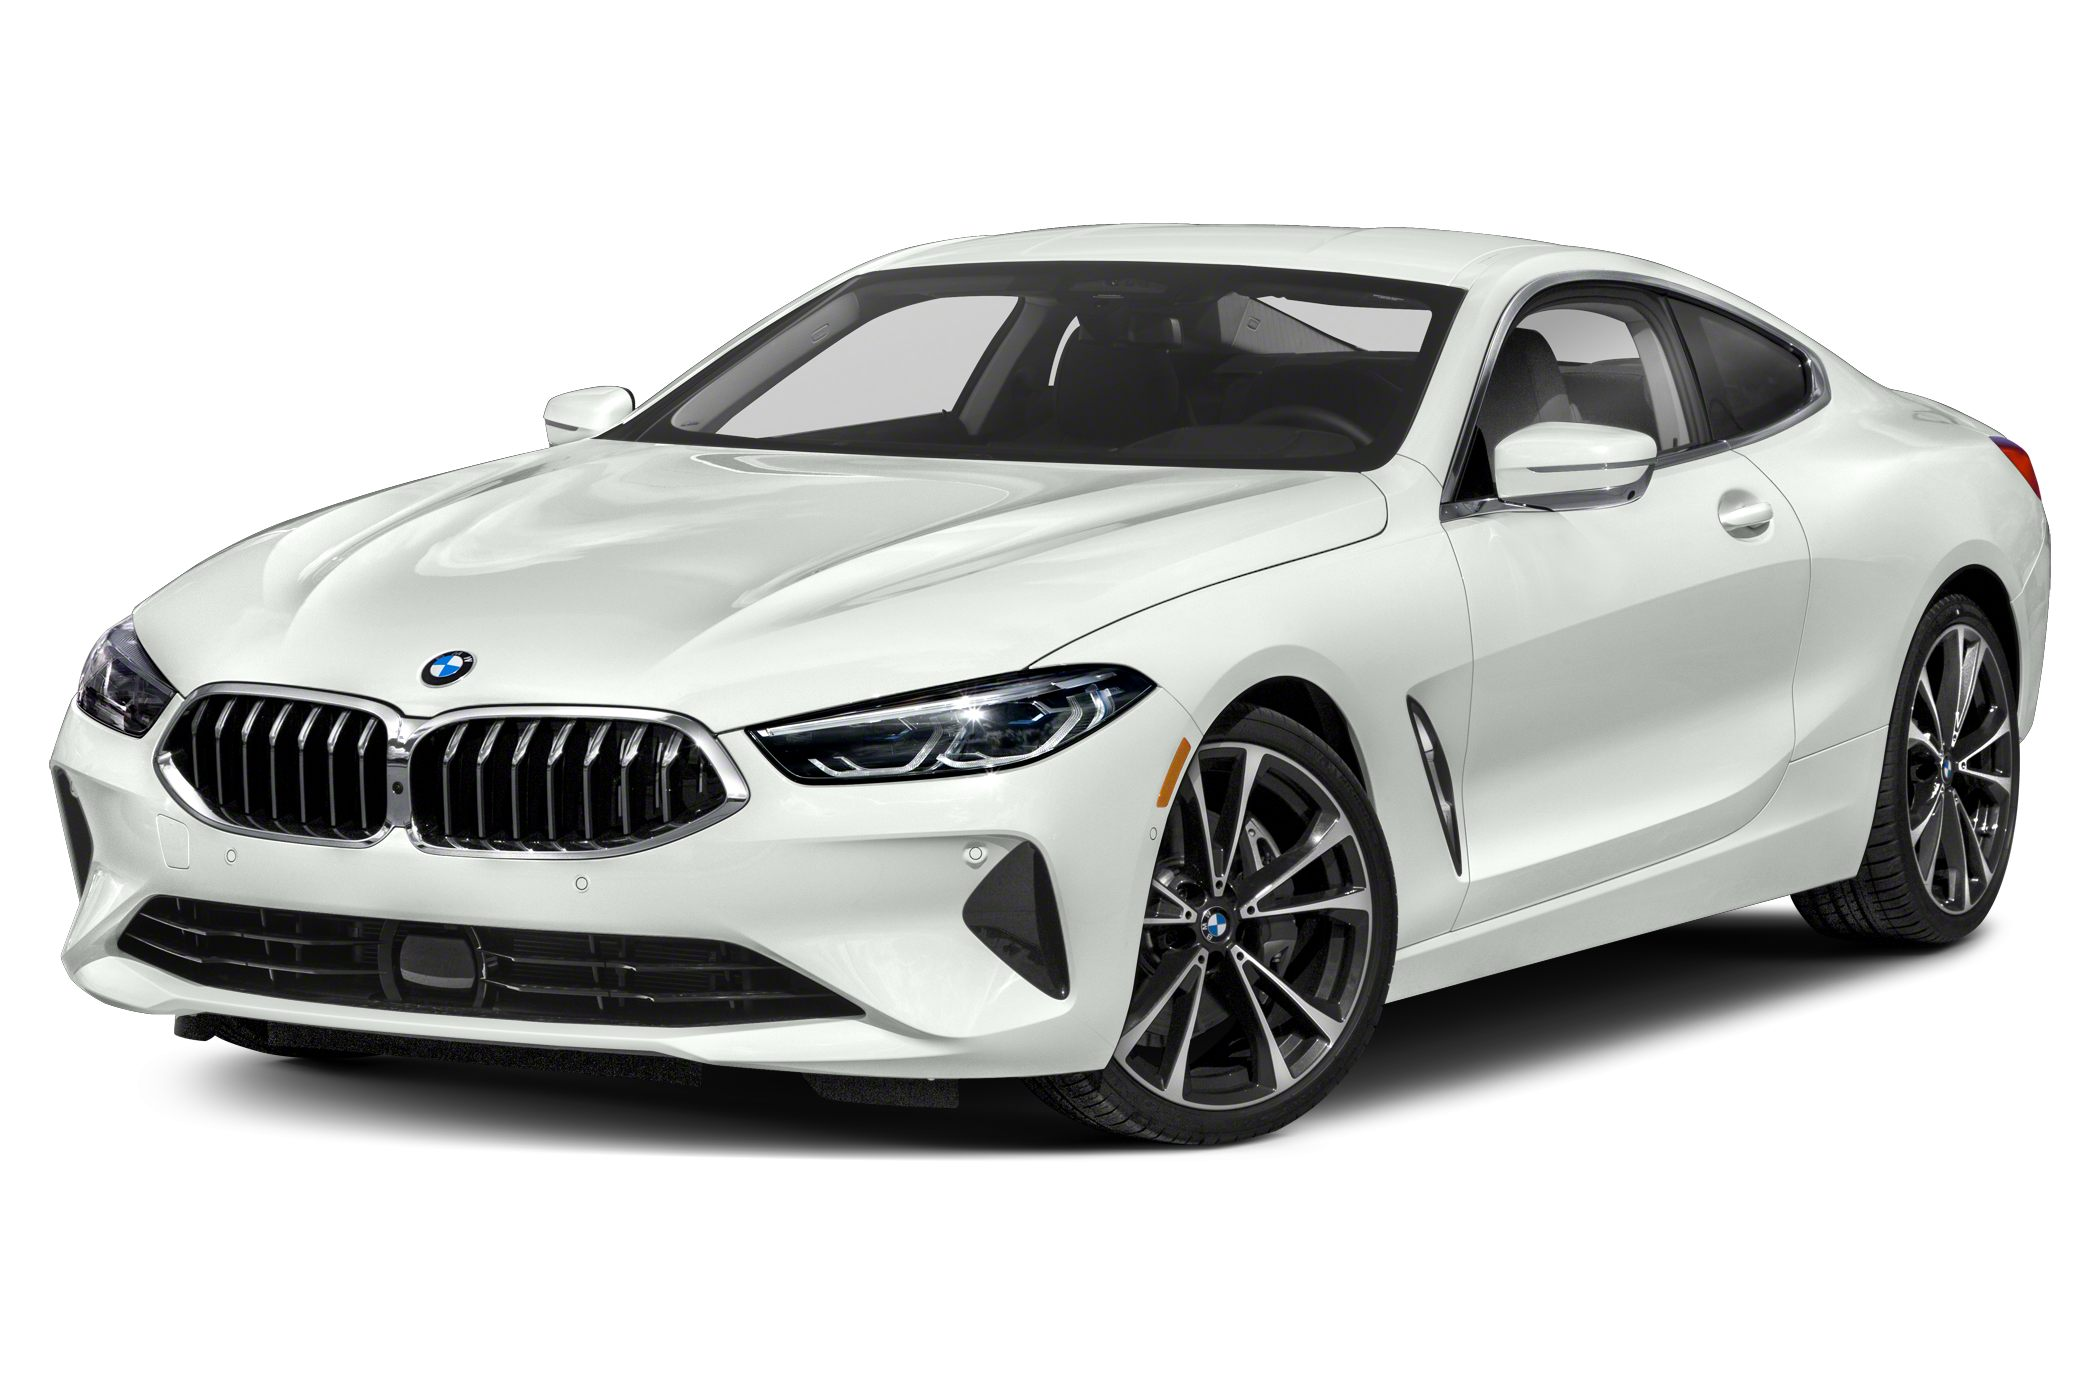 2020 BMW 840 i xDrive 2dr All-wheel Drive Coupe